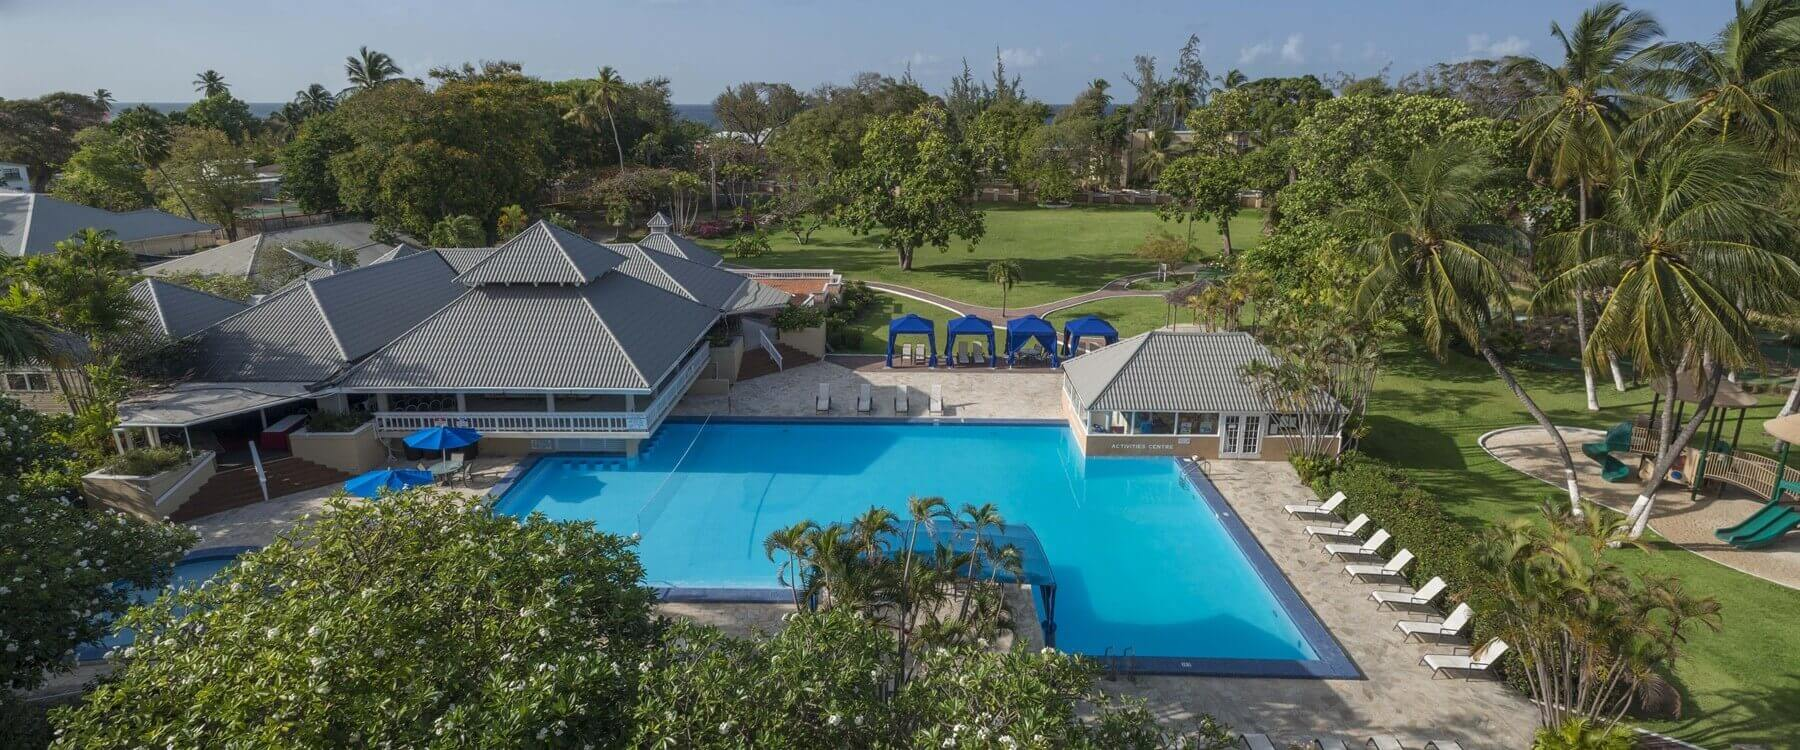 Divi Southwinds Beach Resort - Barbados Vacations